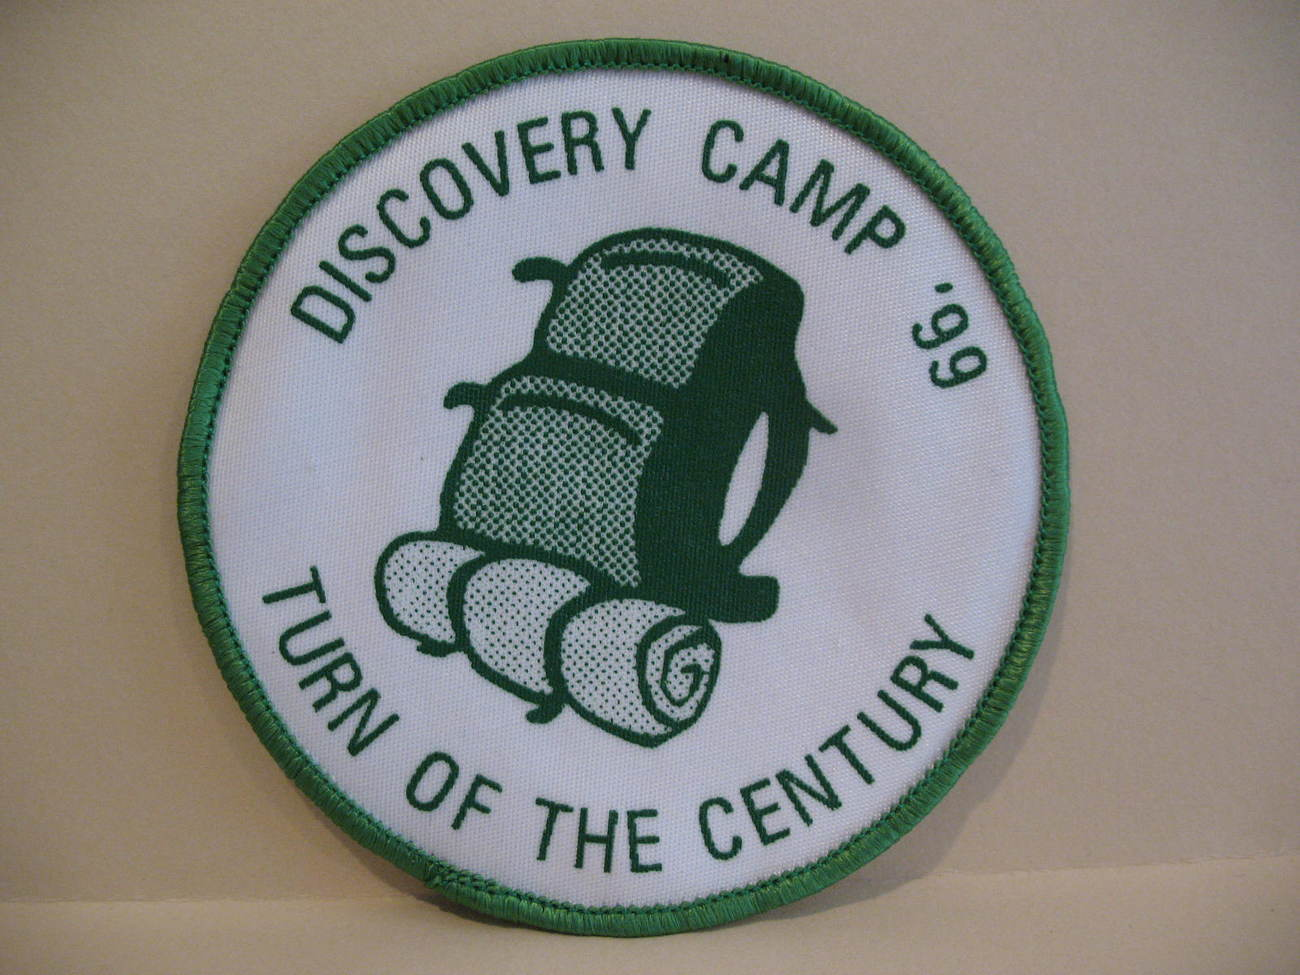 Discovery Camp Scouts Guides Patch Souvenir Badge Crest